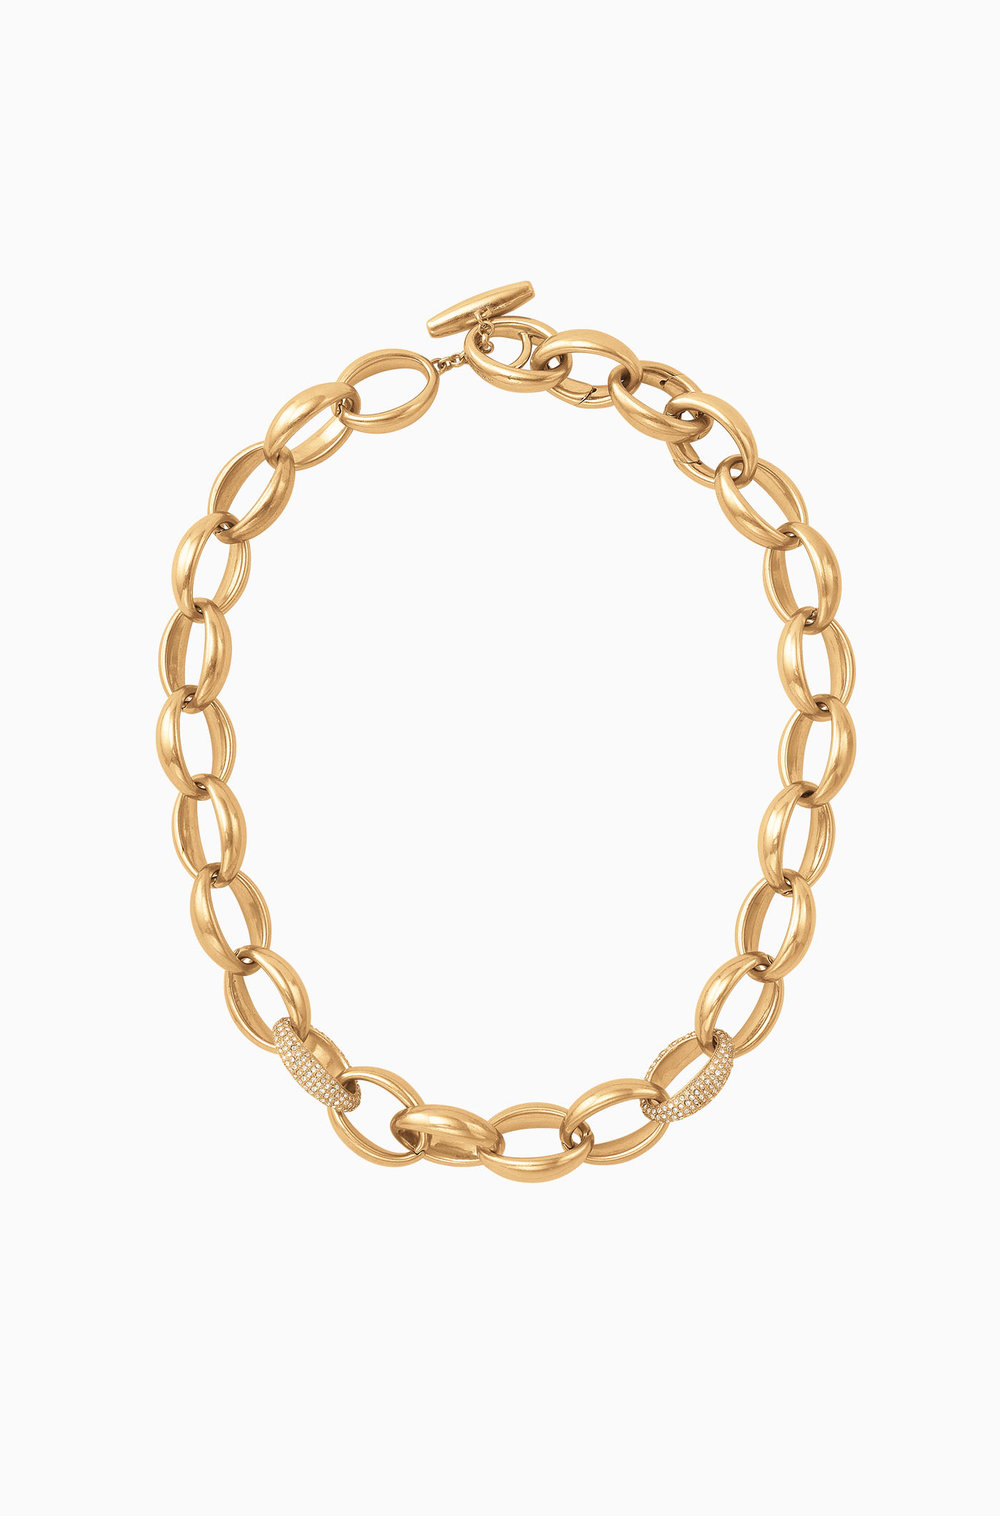 Pave Chain Link $119